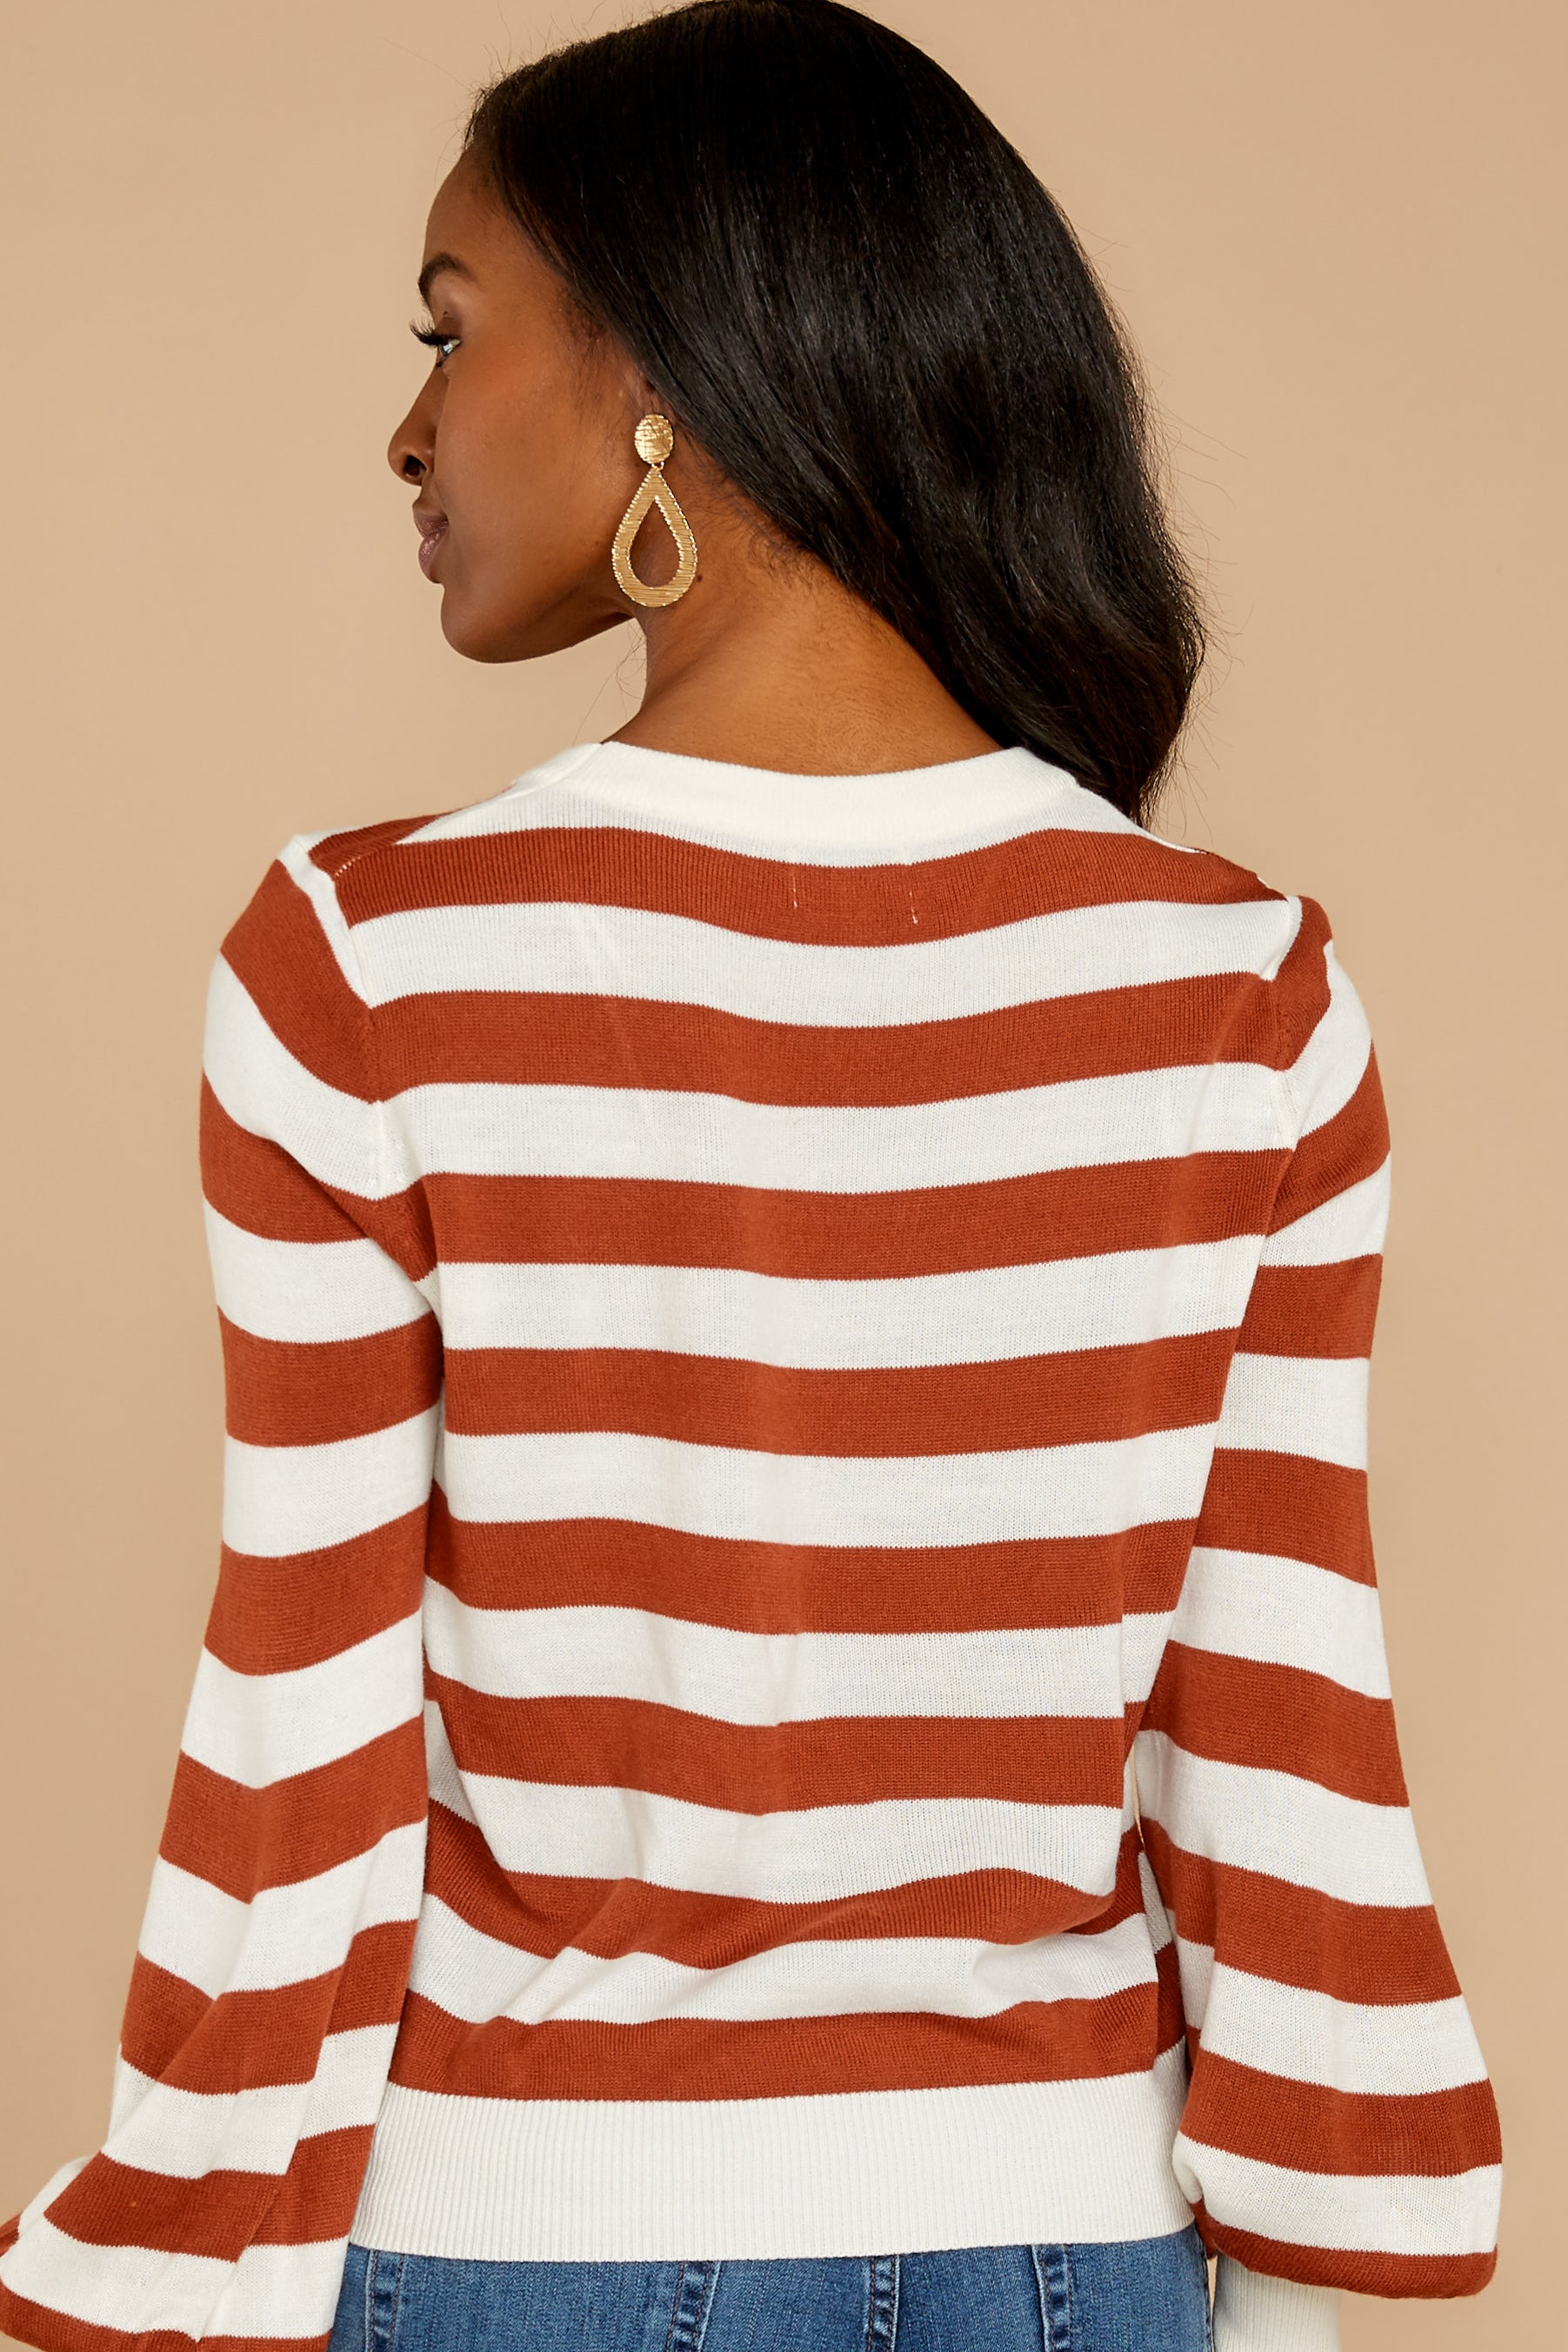 10 Off To Newport Brick Stripe Top at reddressboutique.com